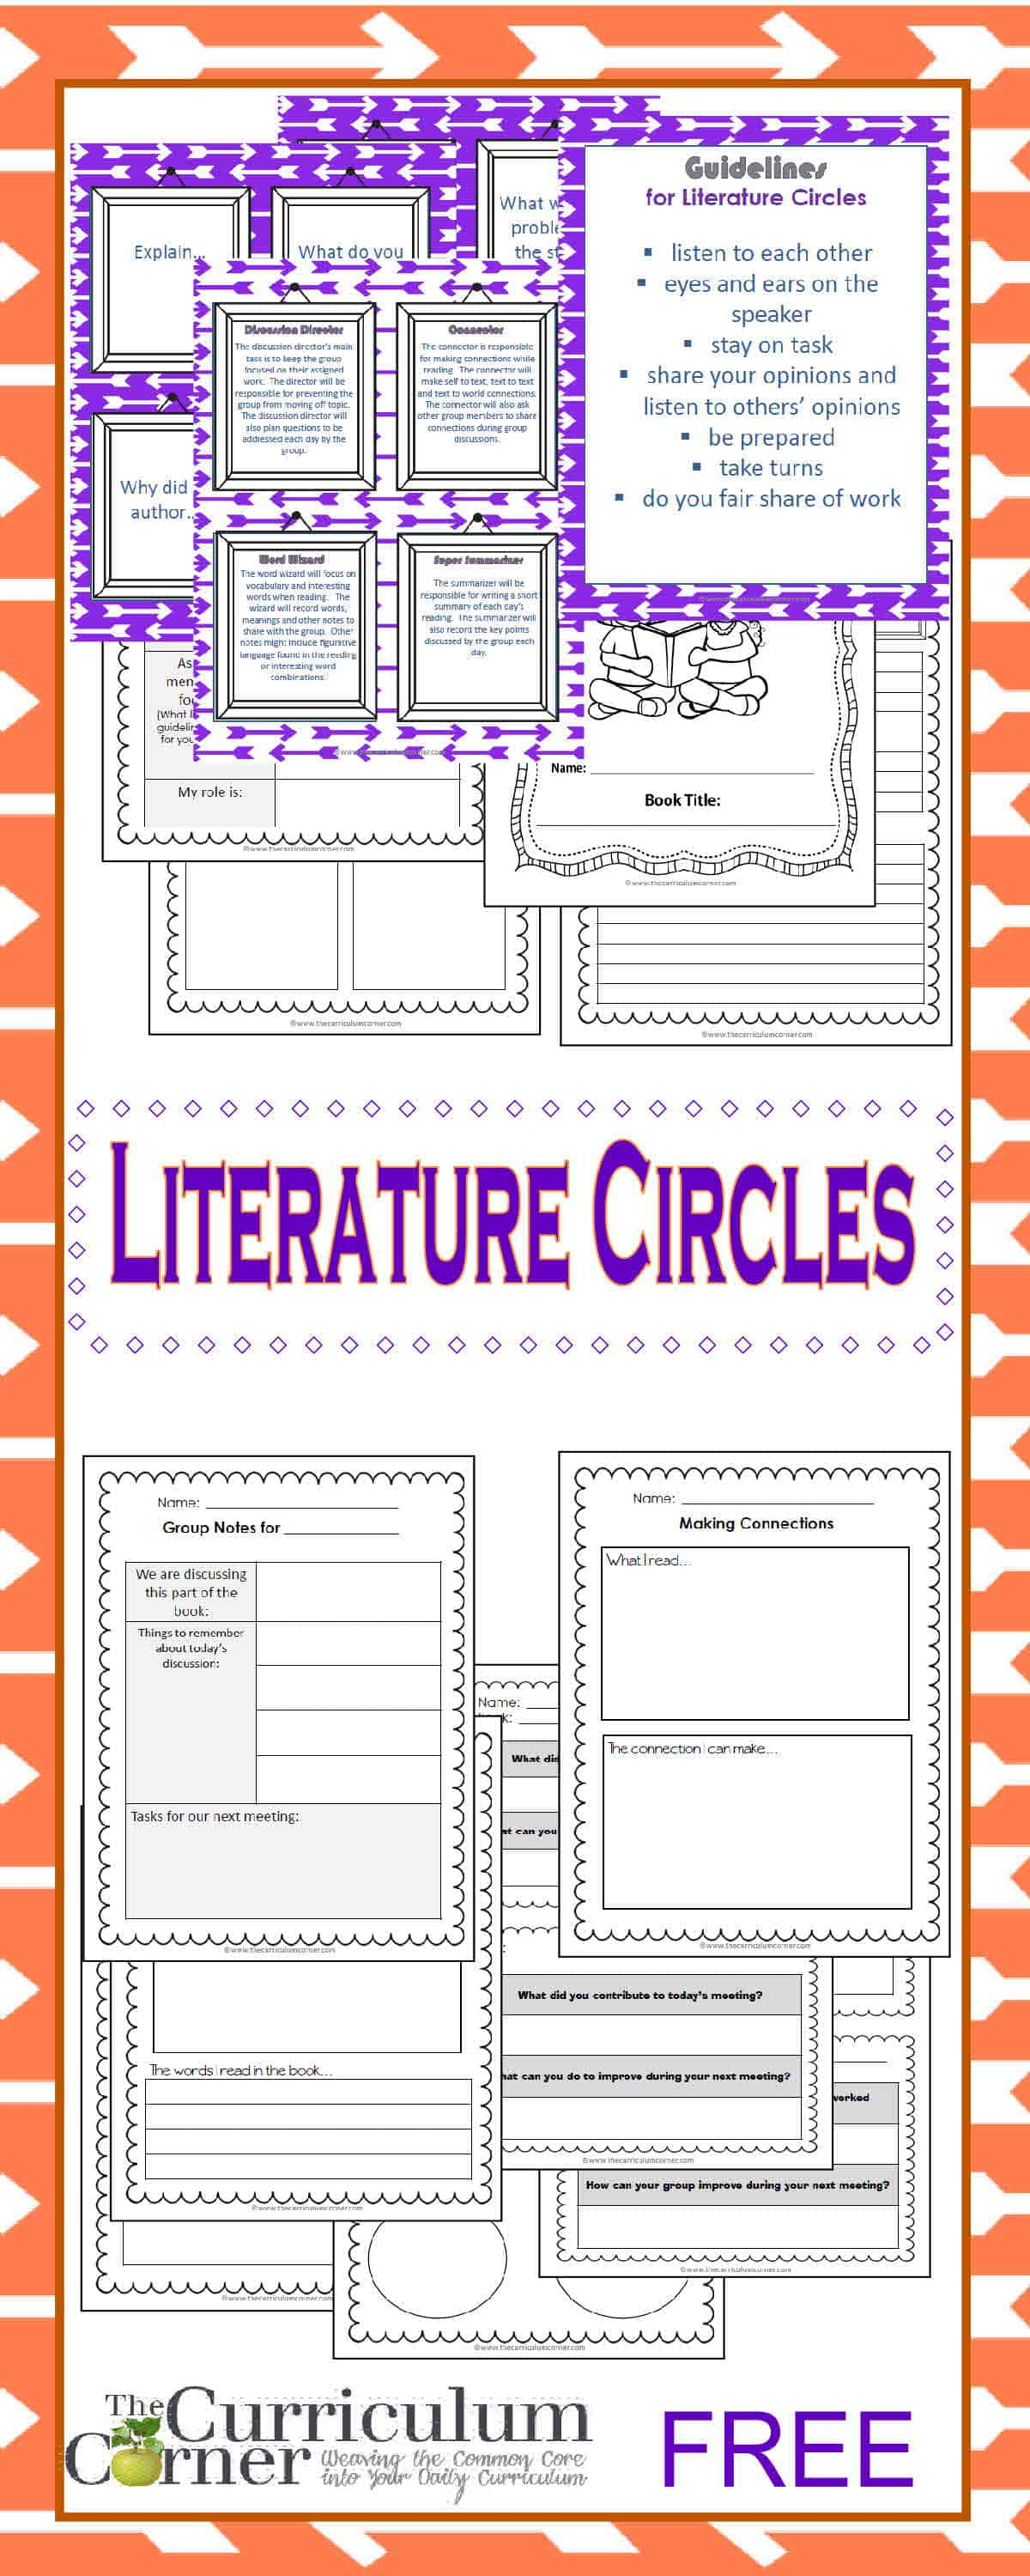 Worksheets Literature Circle Worksheets getting started with literature circles the curriculum corner 4 5 6 circle resources free from book clubs